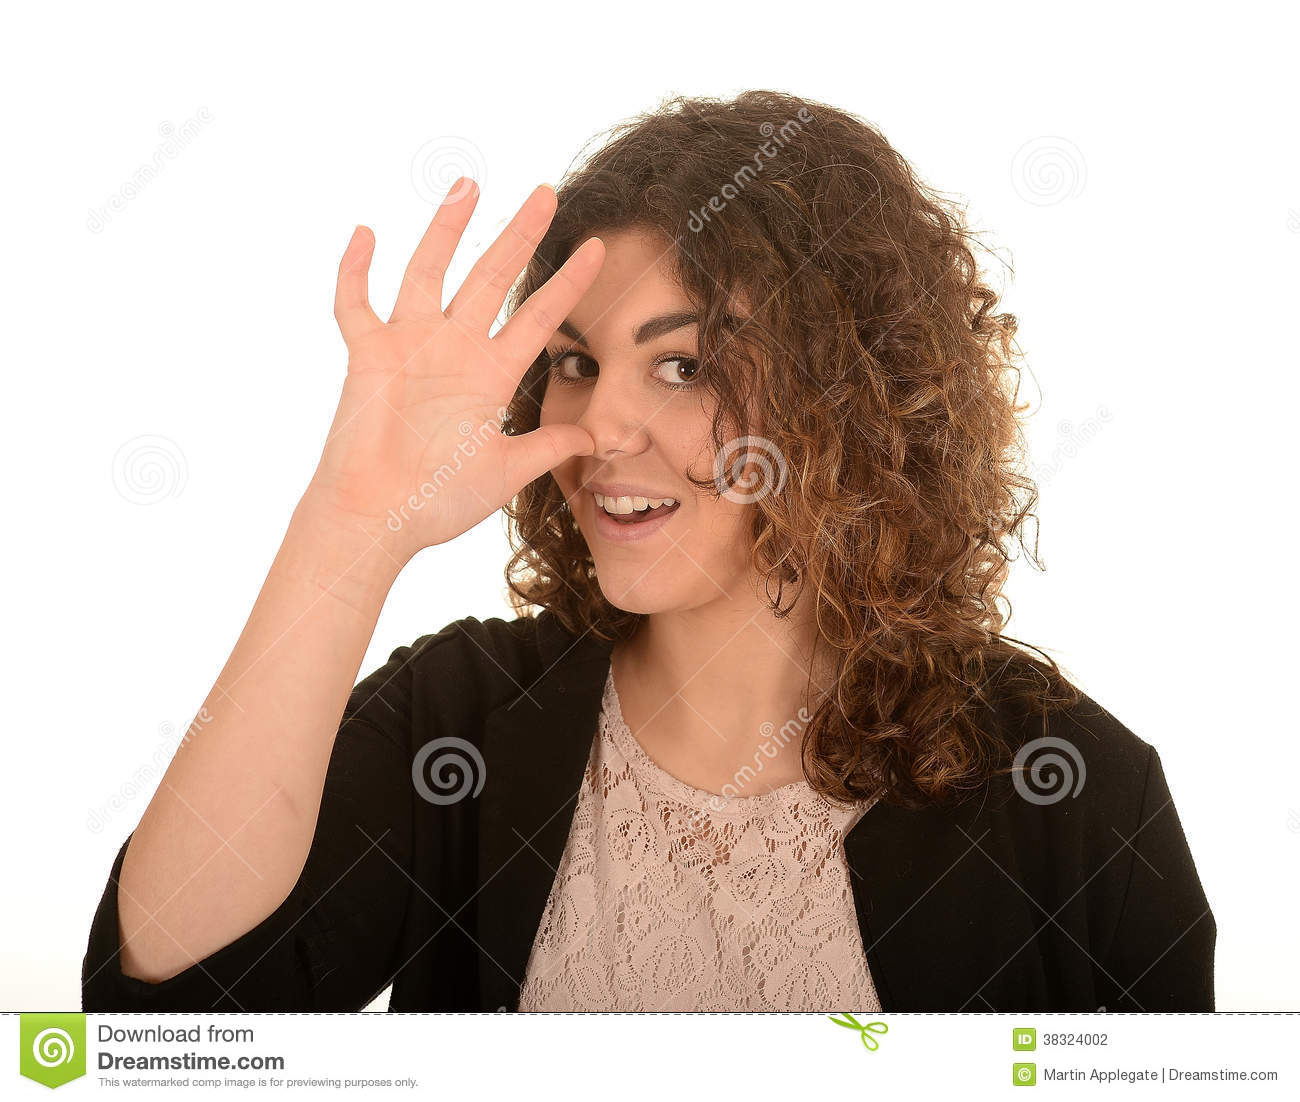 Woman Making A Rude Gesture Stock Photo Image 38324002